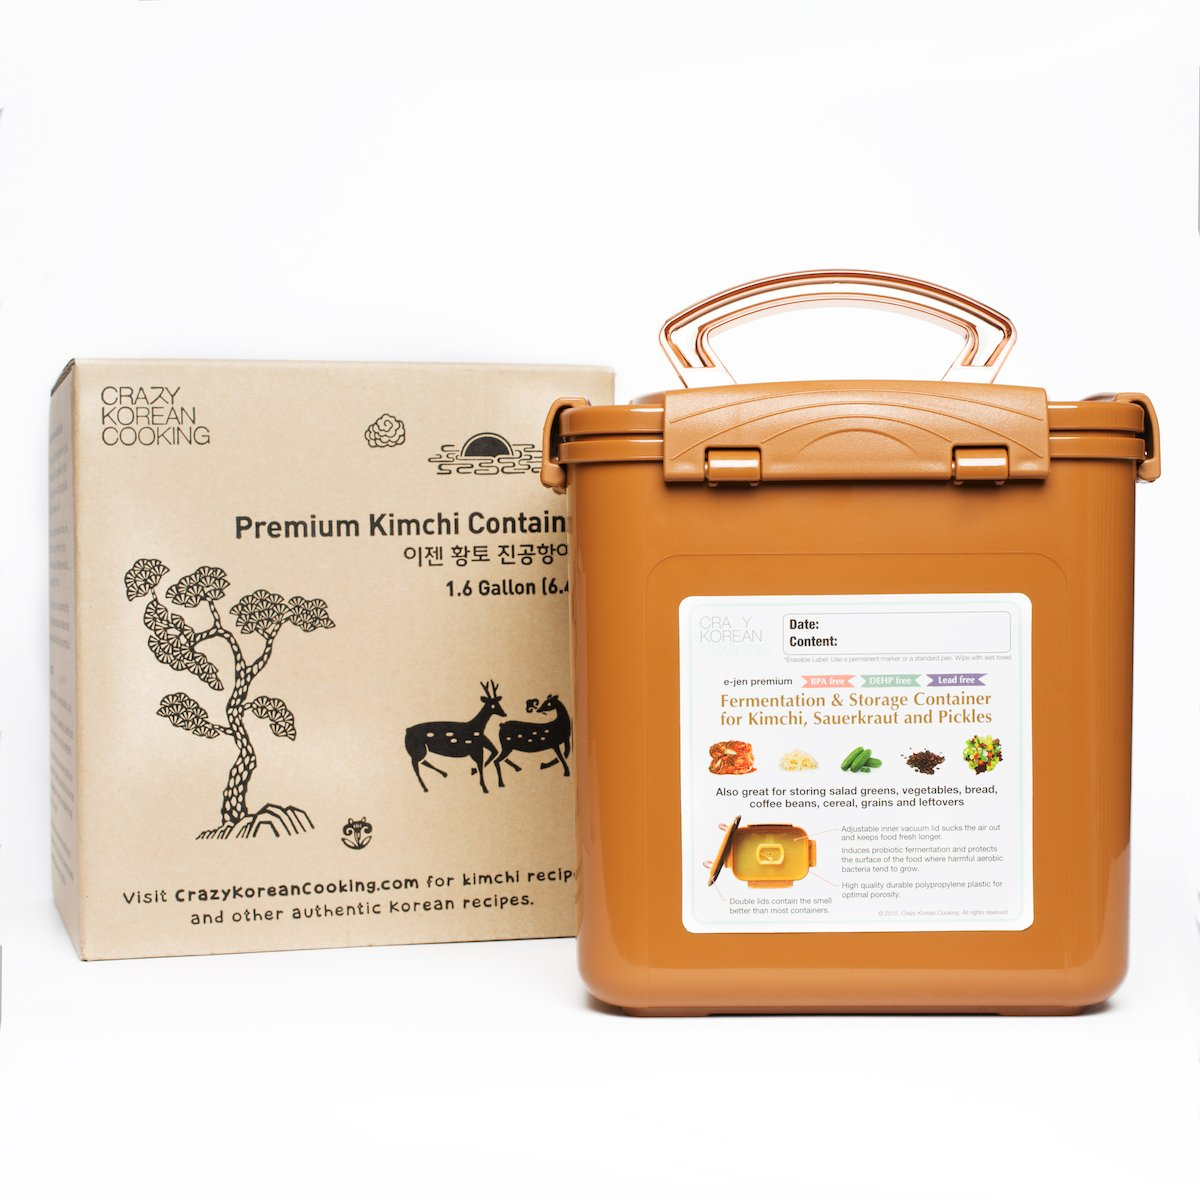 Premium Kimchi, Sauerkraut Fermentation and Storage Container with Inner Vacuum Lid, Sandy Brown - 1.6 Gallon (6.4L)